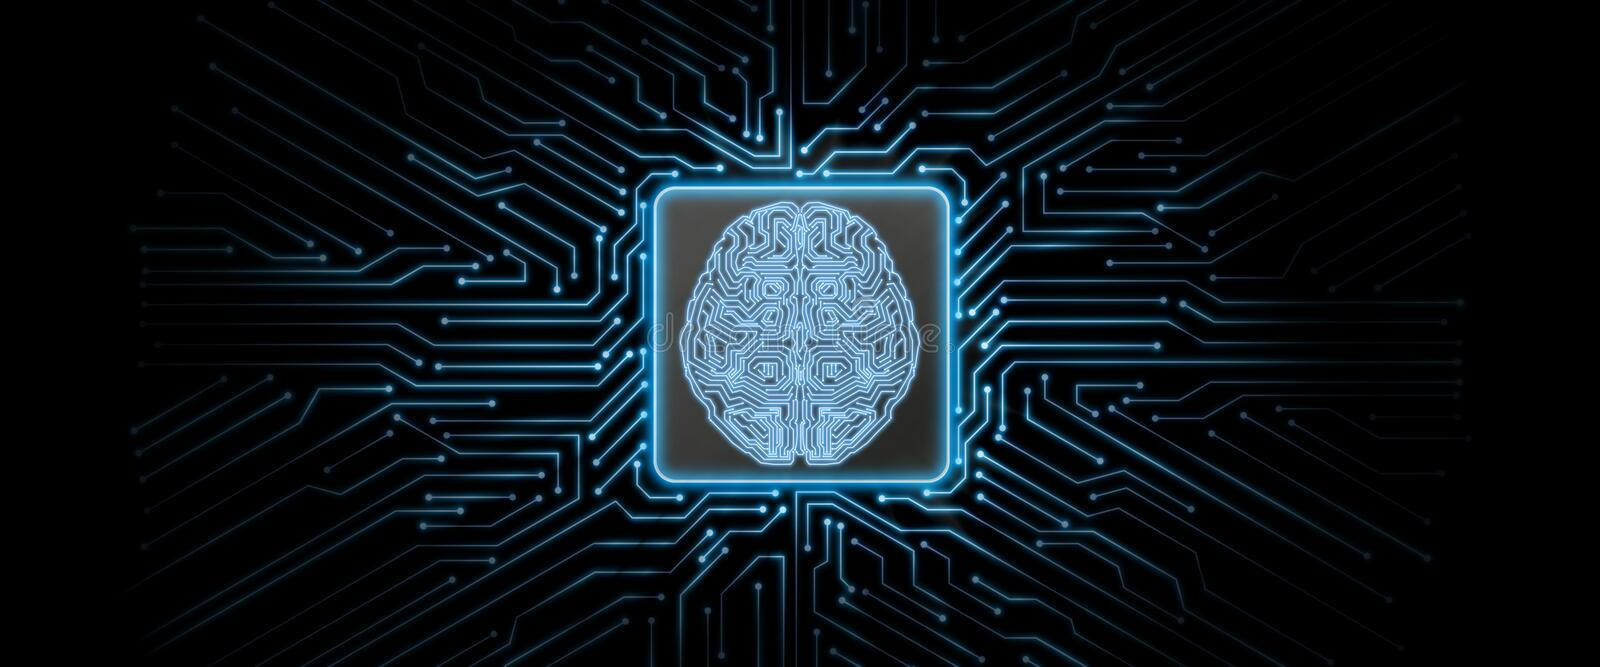 Abstract blue glowing circuit board background with brain logo at center. vector illustration